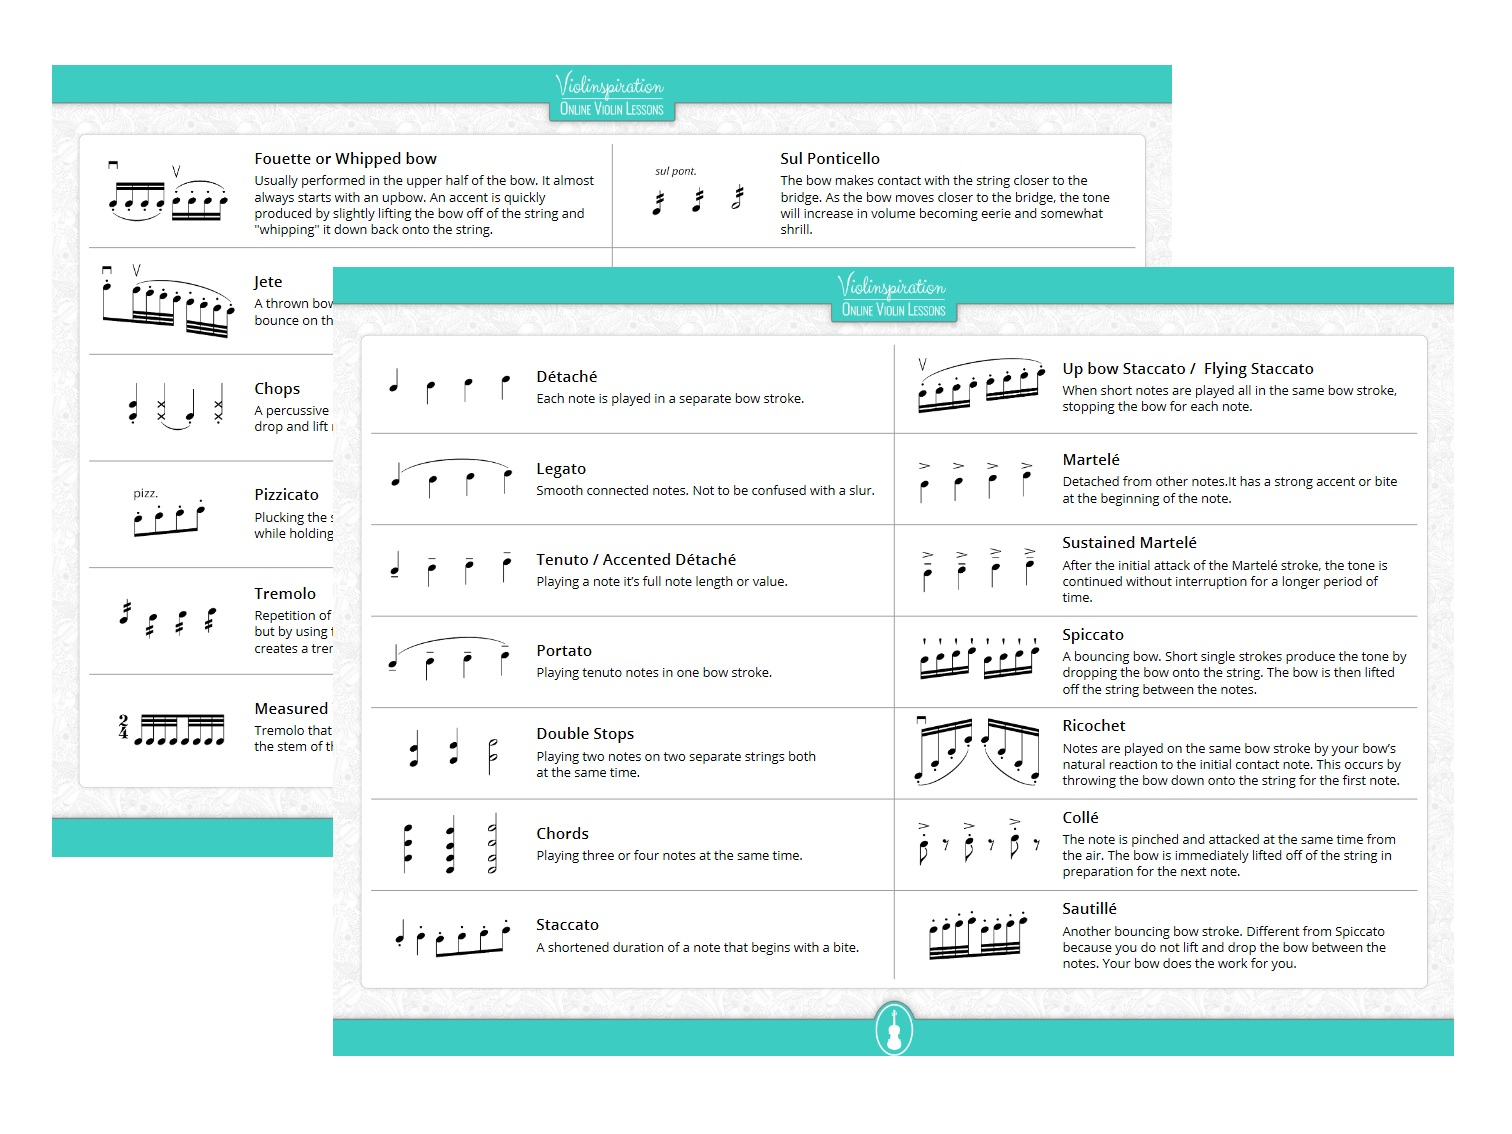 Complete Overview of Violin Bowing Techniques Terms, Symbols and Definitions - Bowing Technique Cheat Sheet